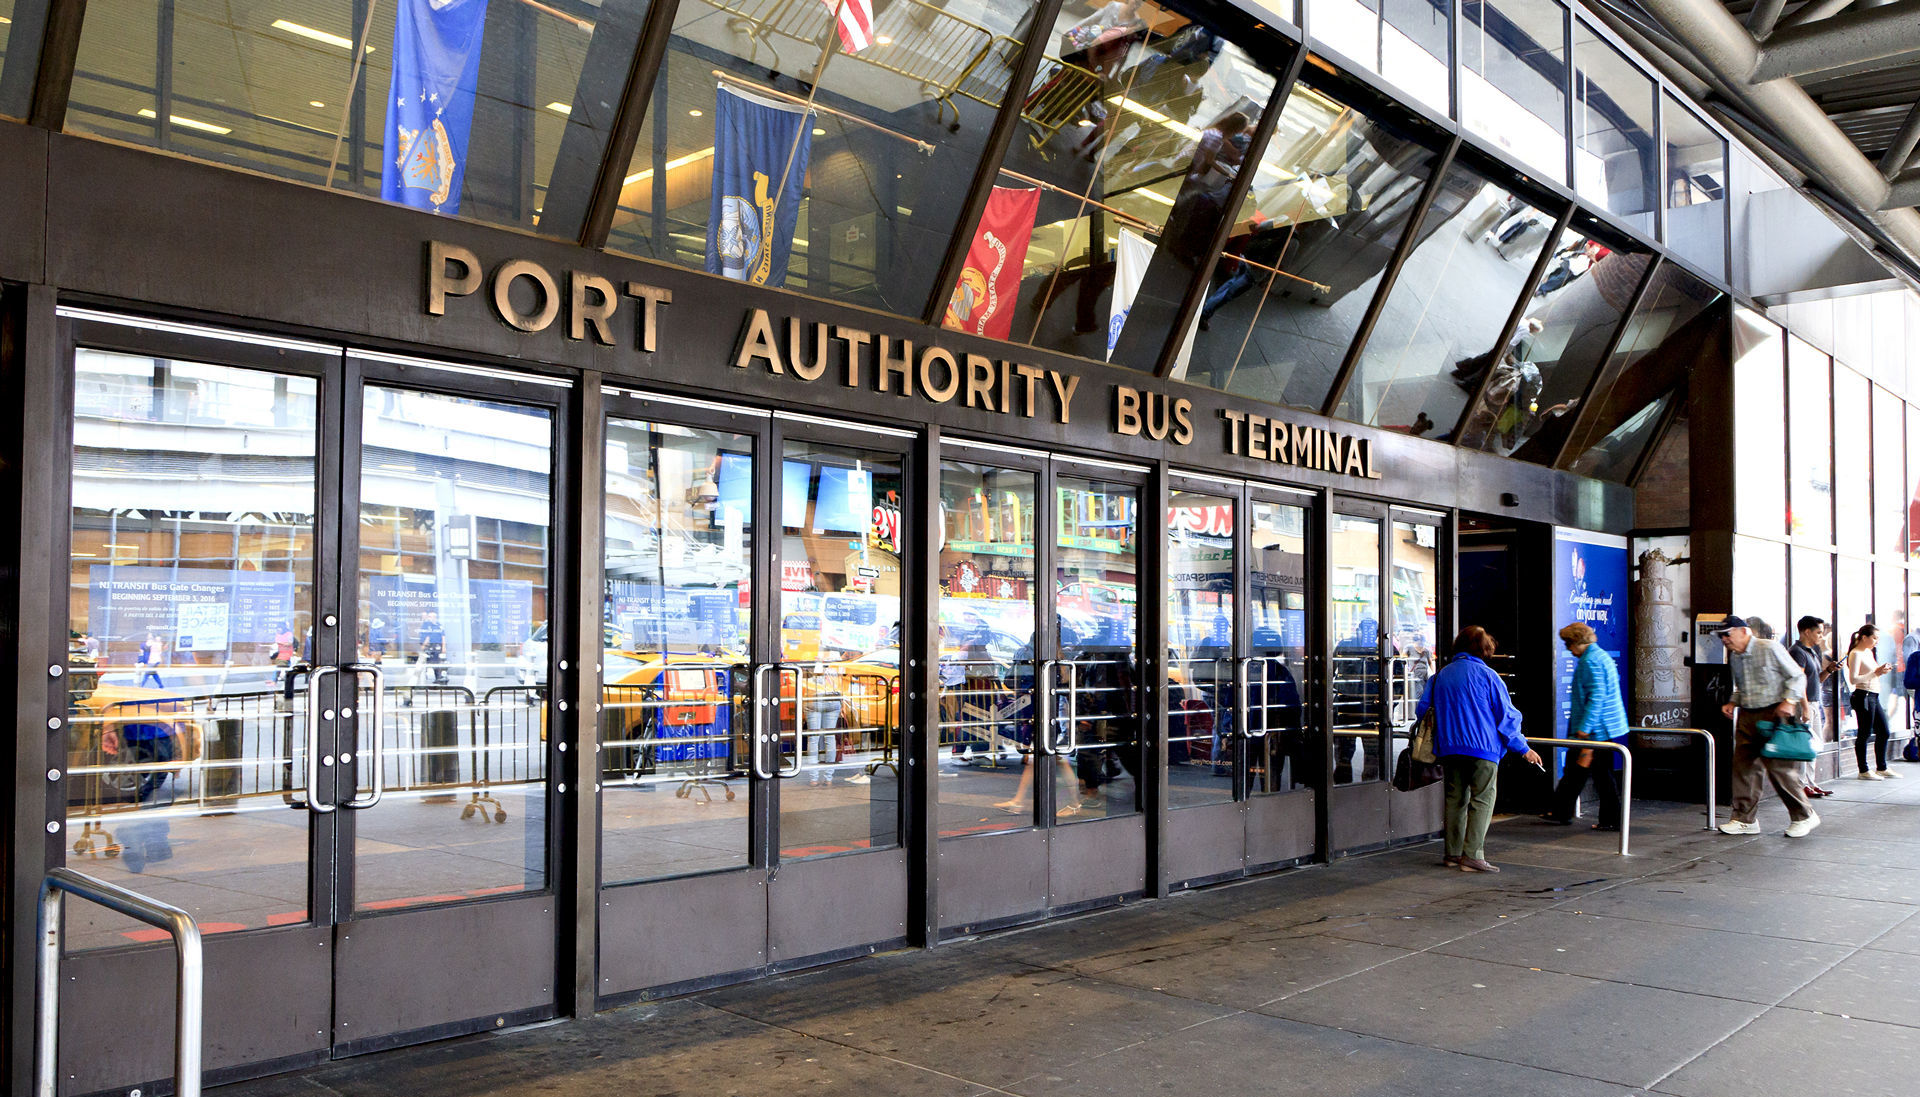 Port Authority of New York and New Jersey Bus Terminal